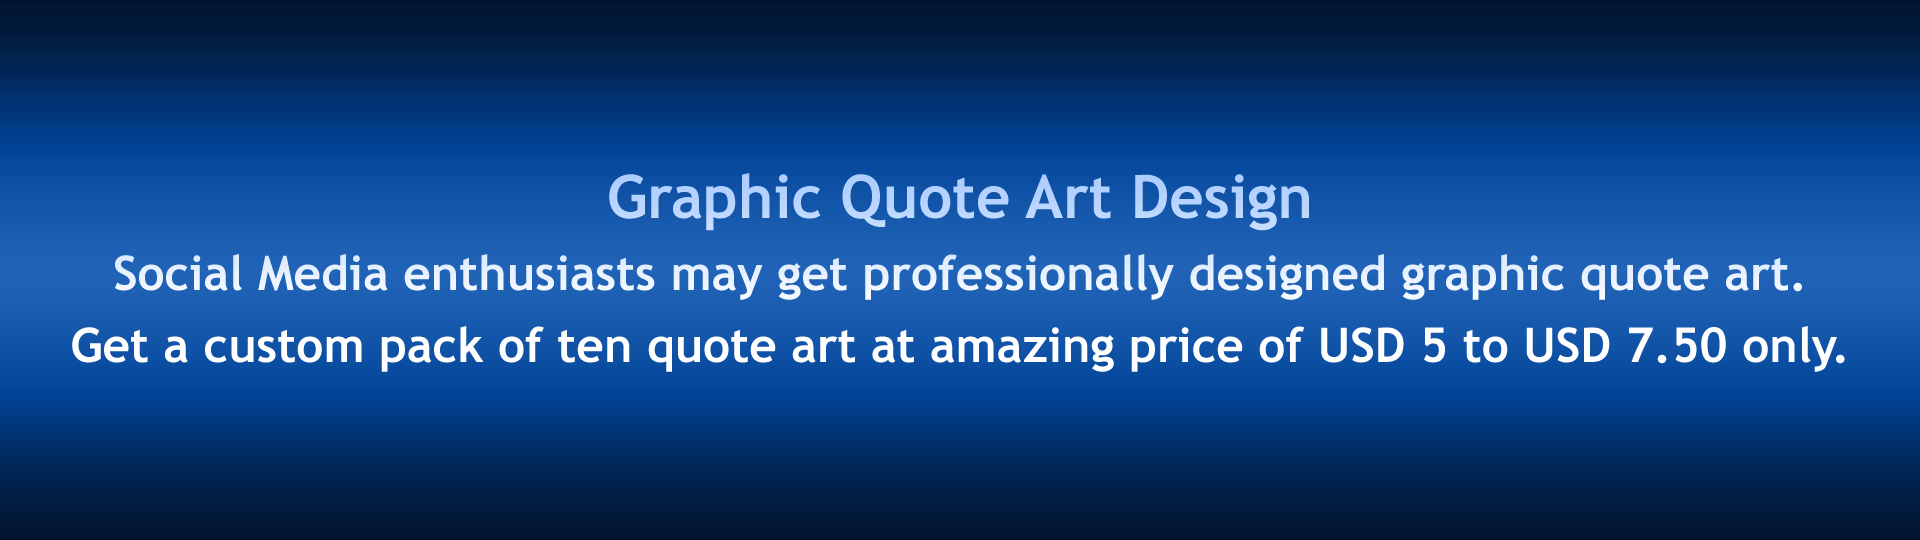 Slide 3 - Graphic Quote Art Design